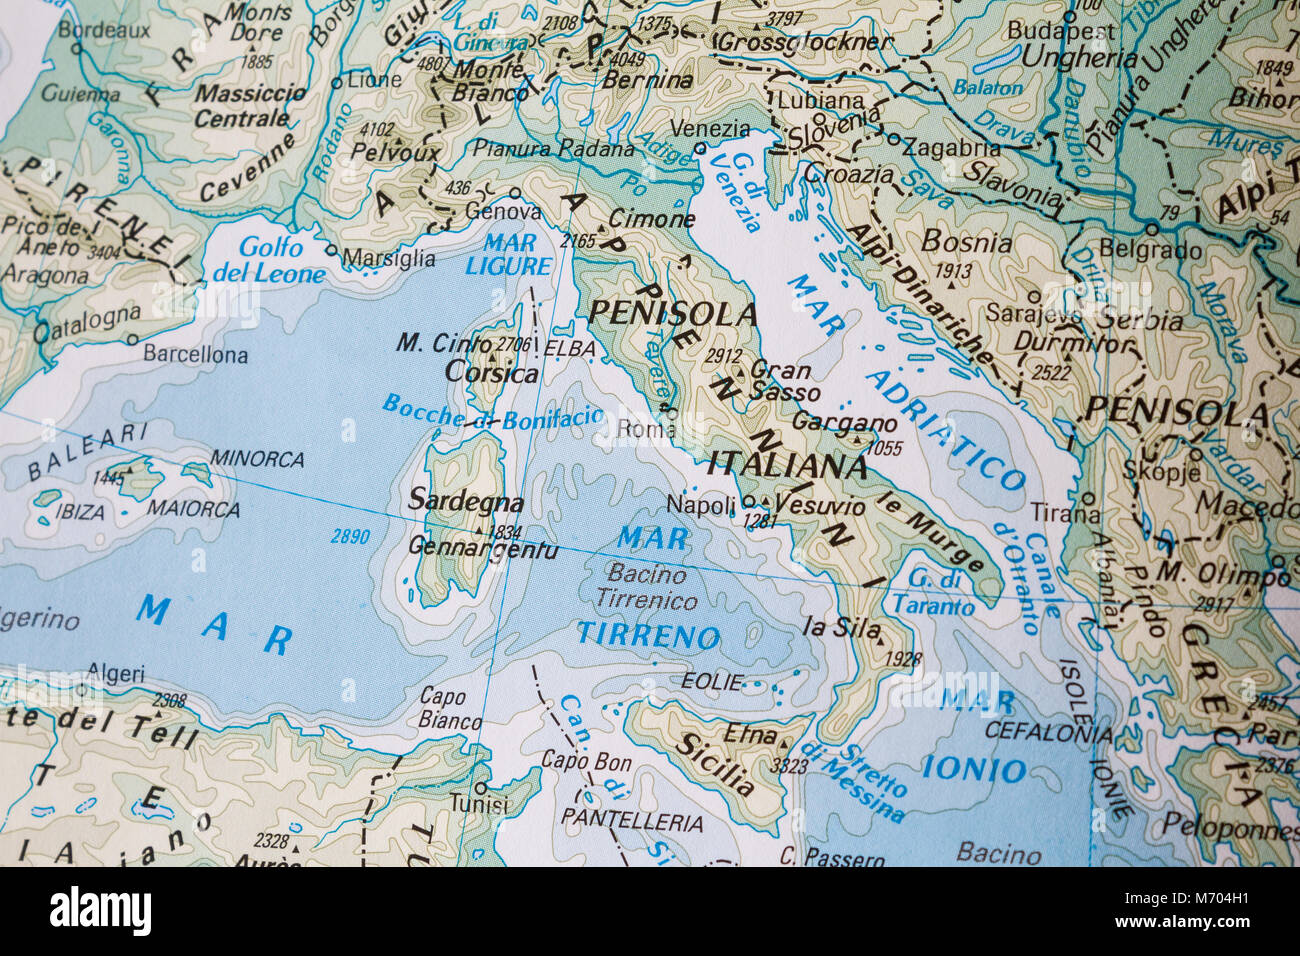 Physical map of the Southern Europe Stock Photo: 176409885 - Alamy